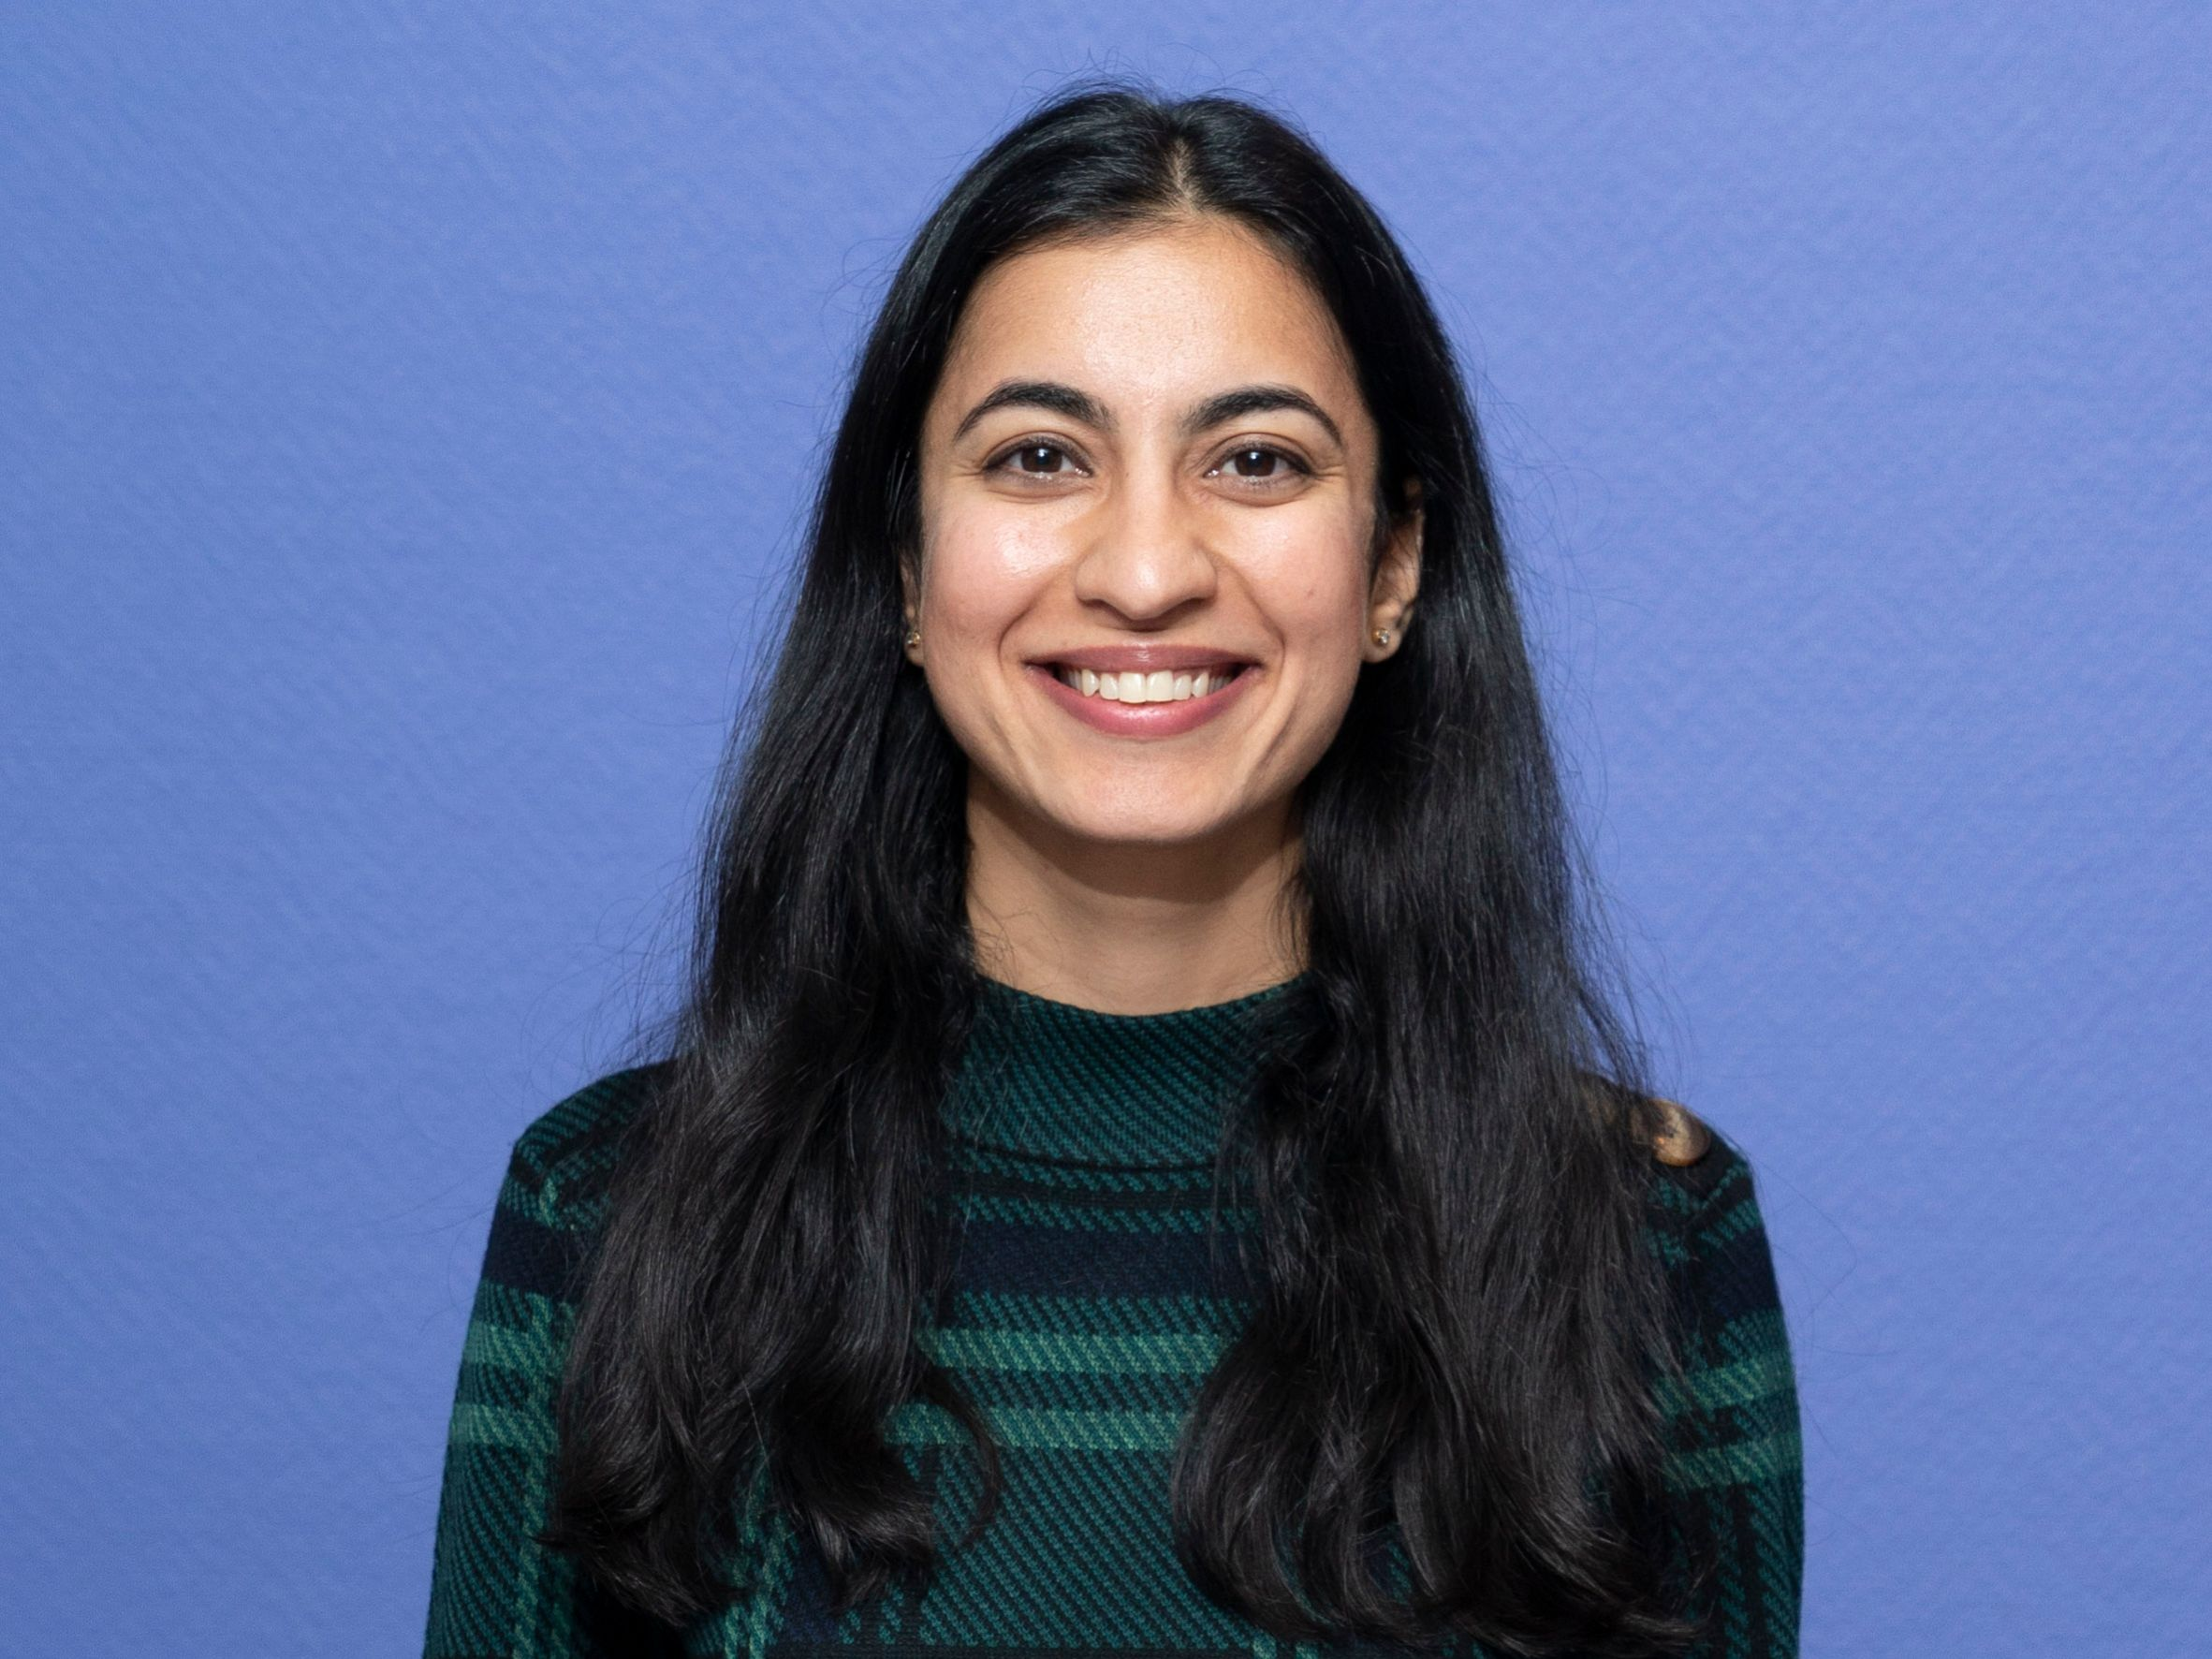 Esha Mendiratta joined the University of Groningen in 2016 after a PhD in Sydney.